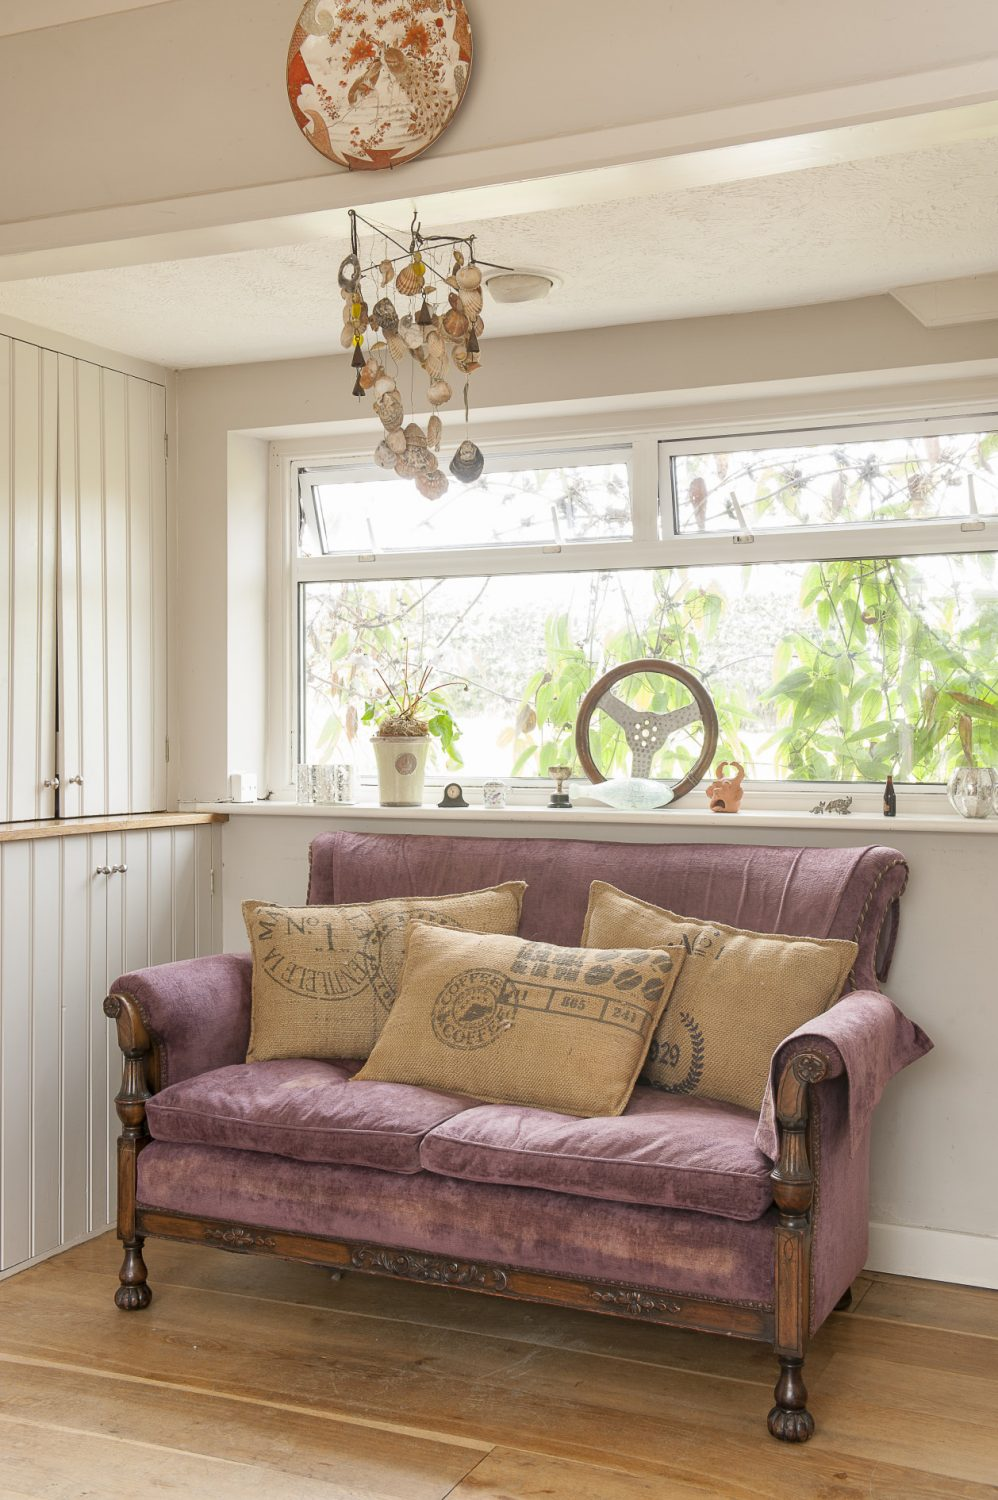 A velvet sofa tucks neatly into an alcove by the kitchen window